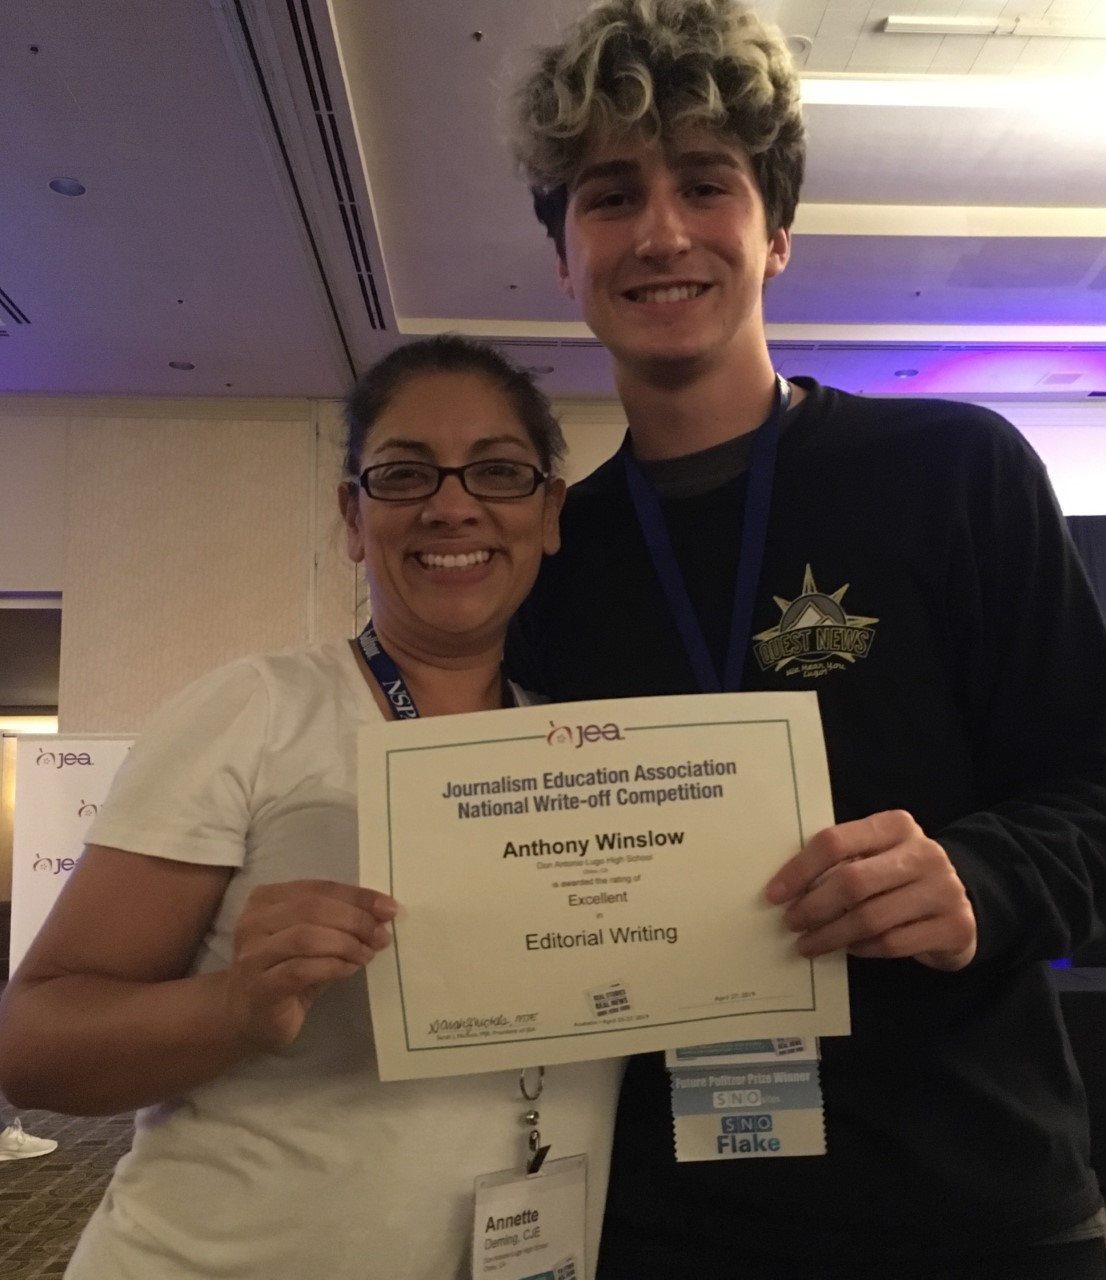 Adviser%2C+Annette+Deming%2C+CJE+congratulates+Anthony+Winslow+on+his+second-place-category+Excellent+Award+in+Editorial+Writing.